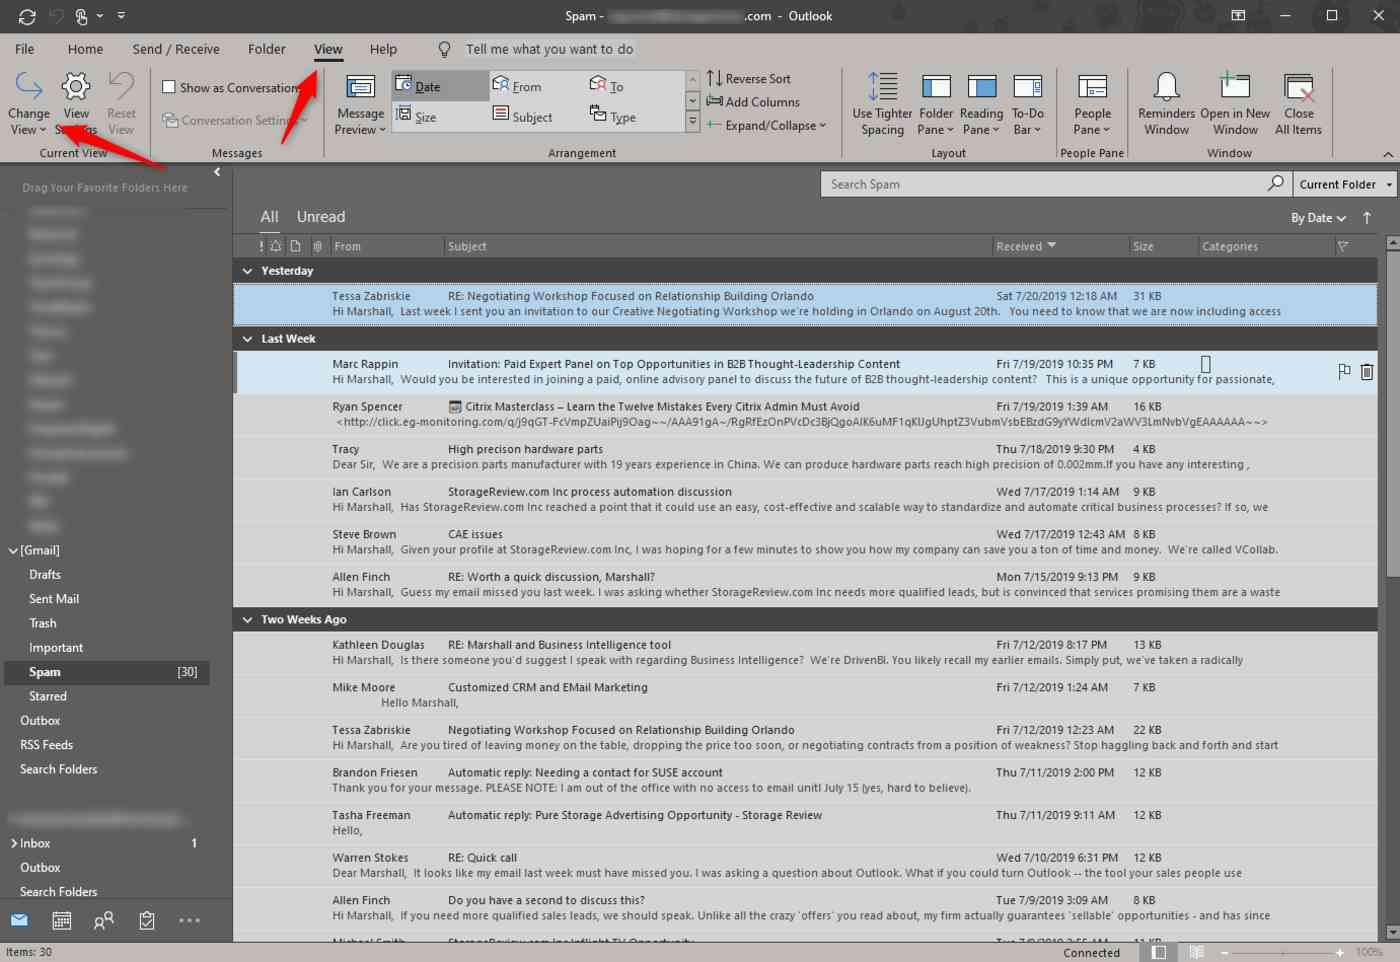 Outlook allows you to change the way you view emails.